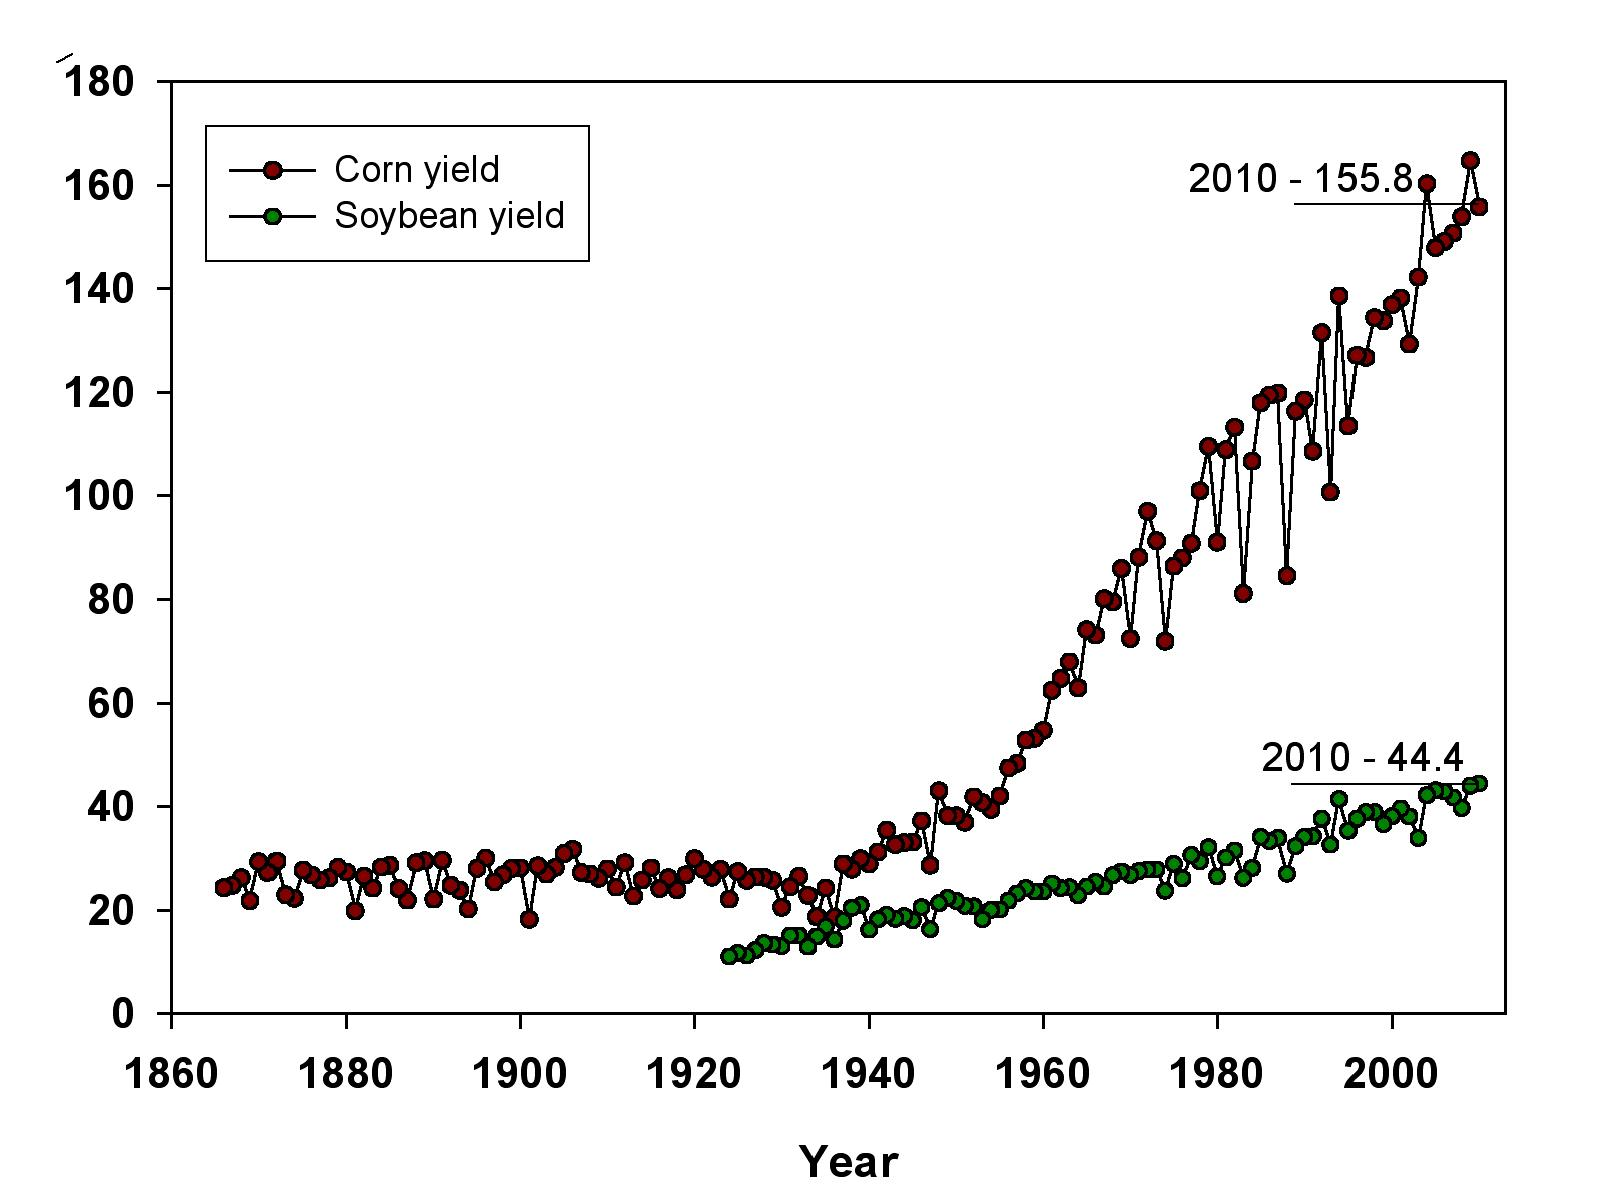 average yield of corn and soybeans in the U.S.